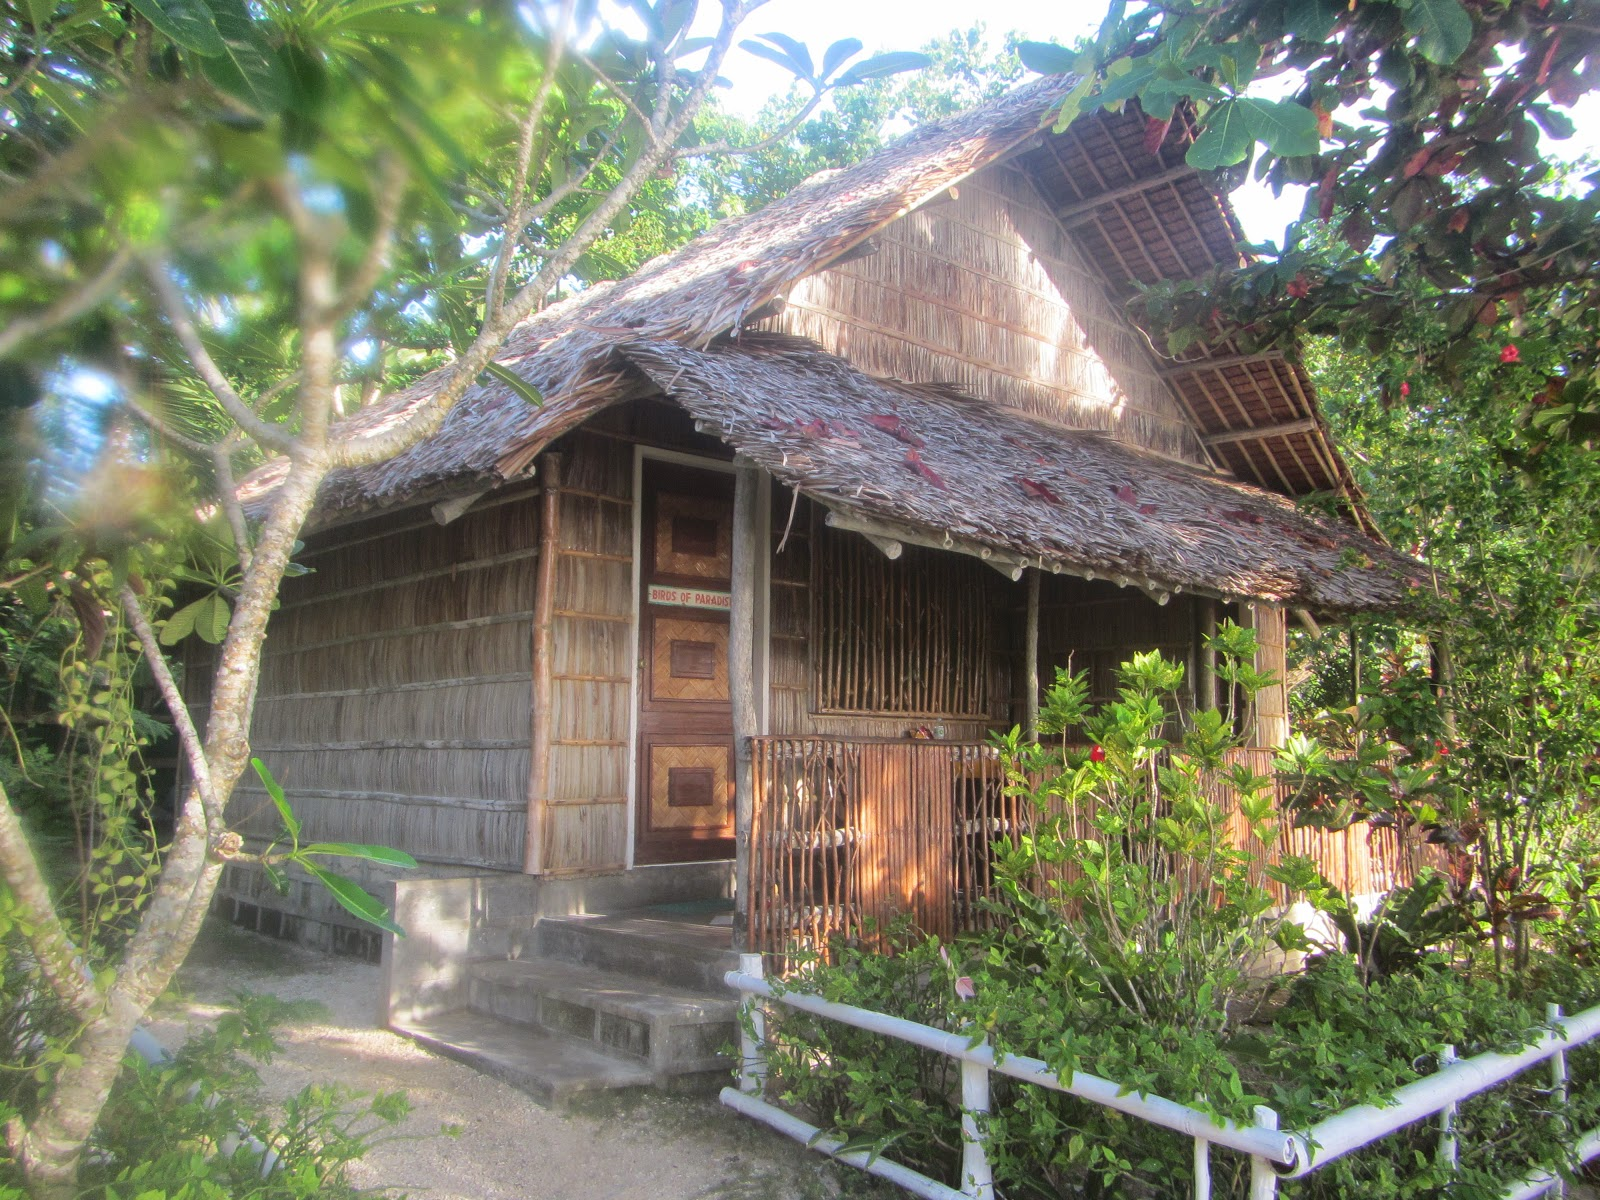 The nipa hut accommodation